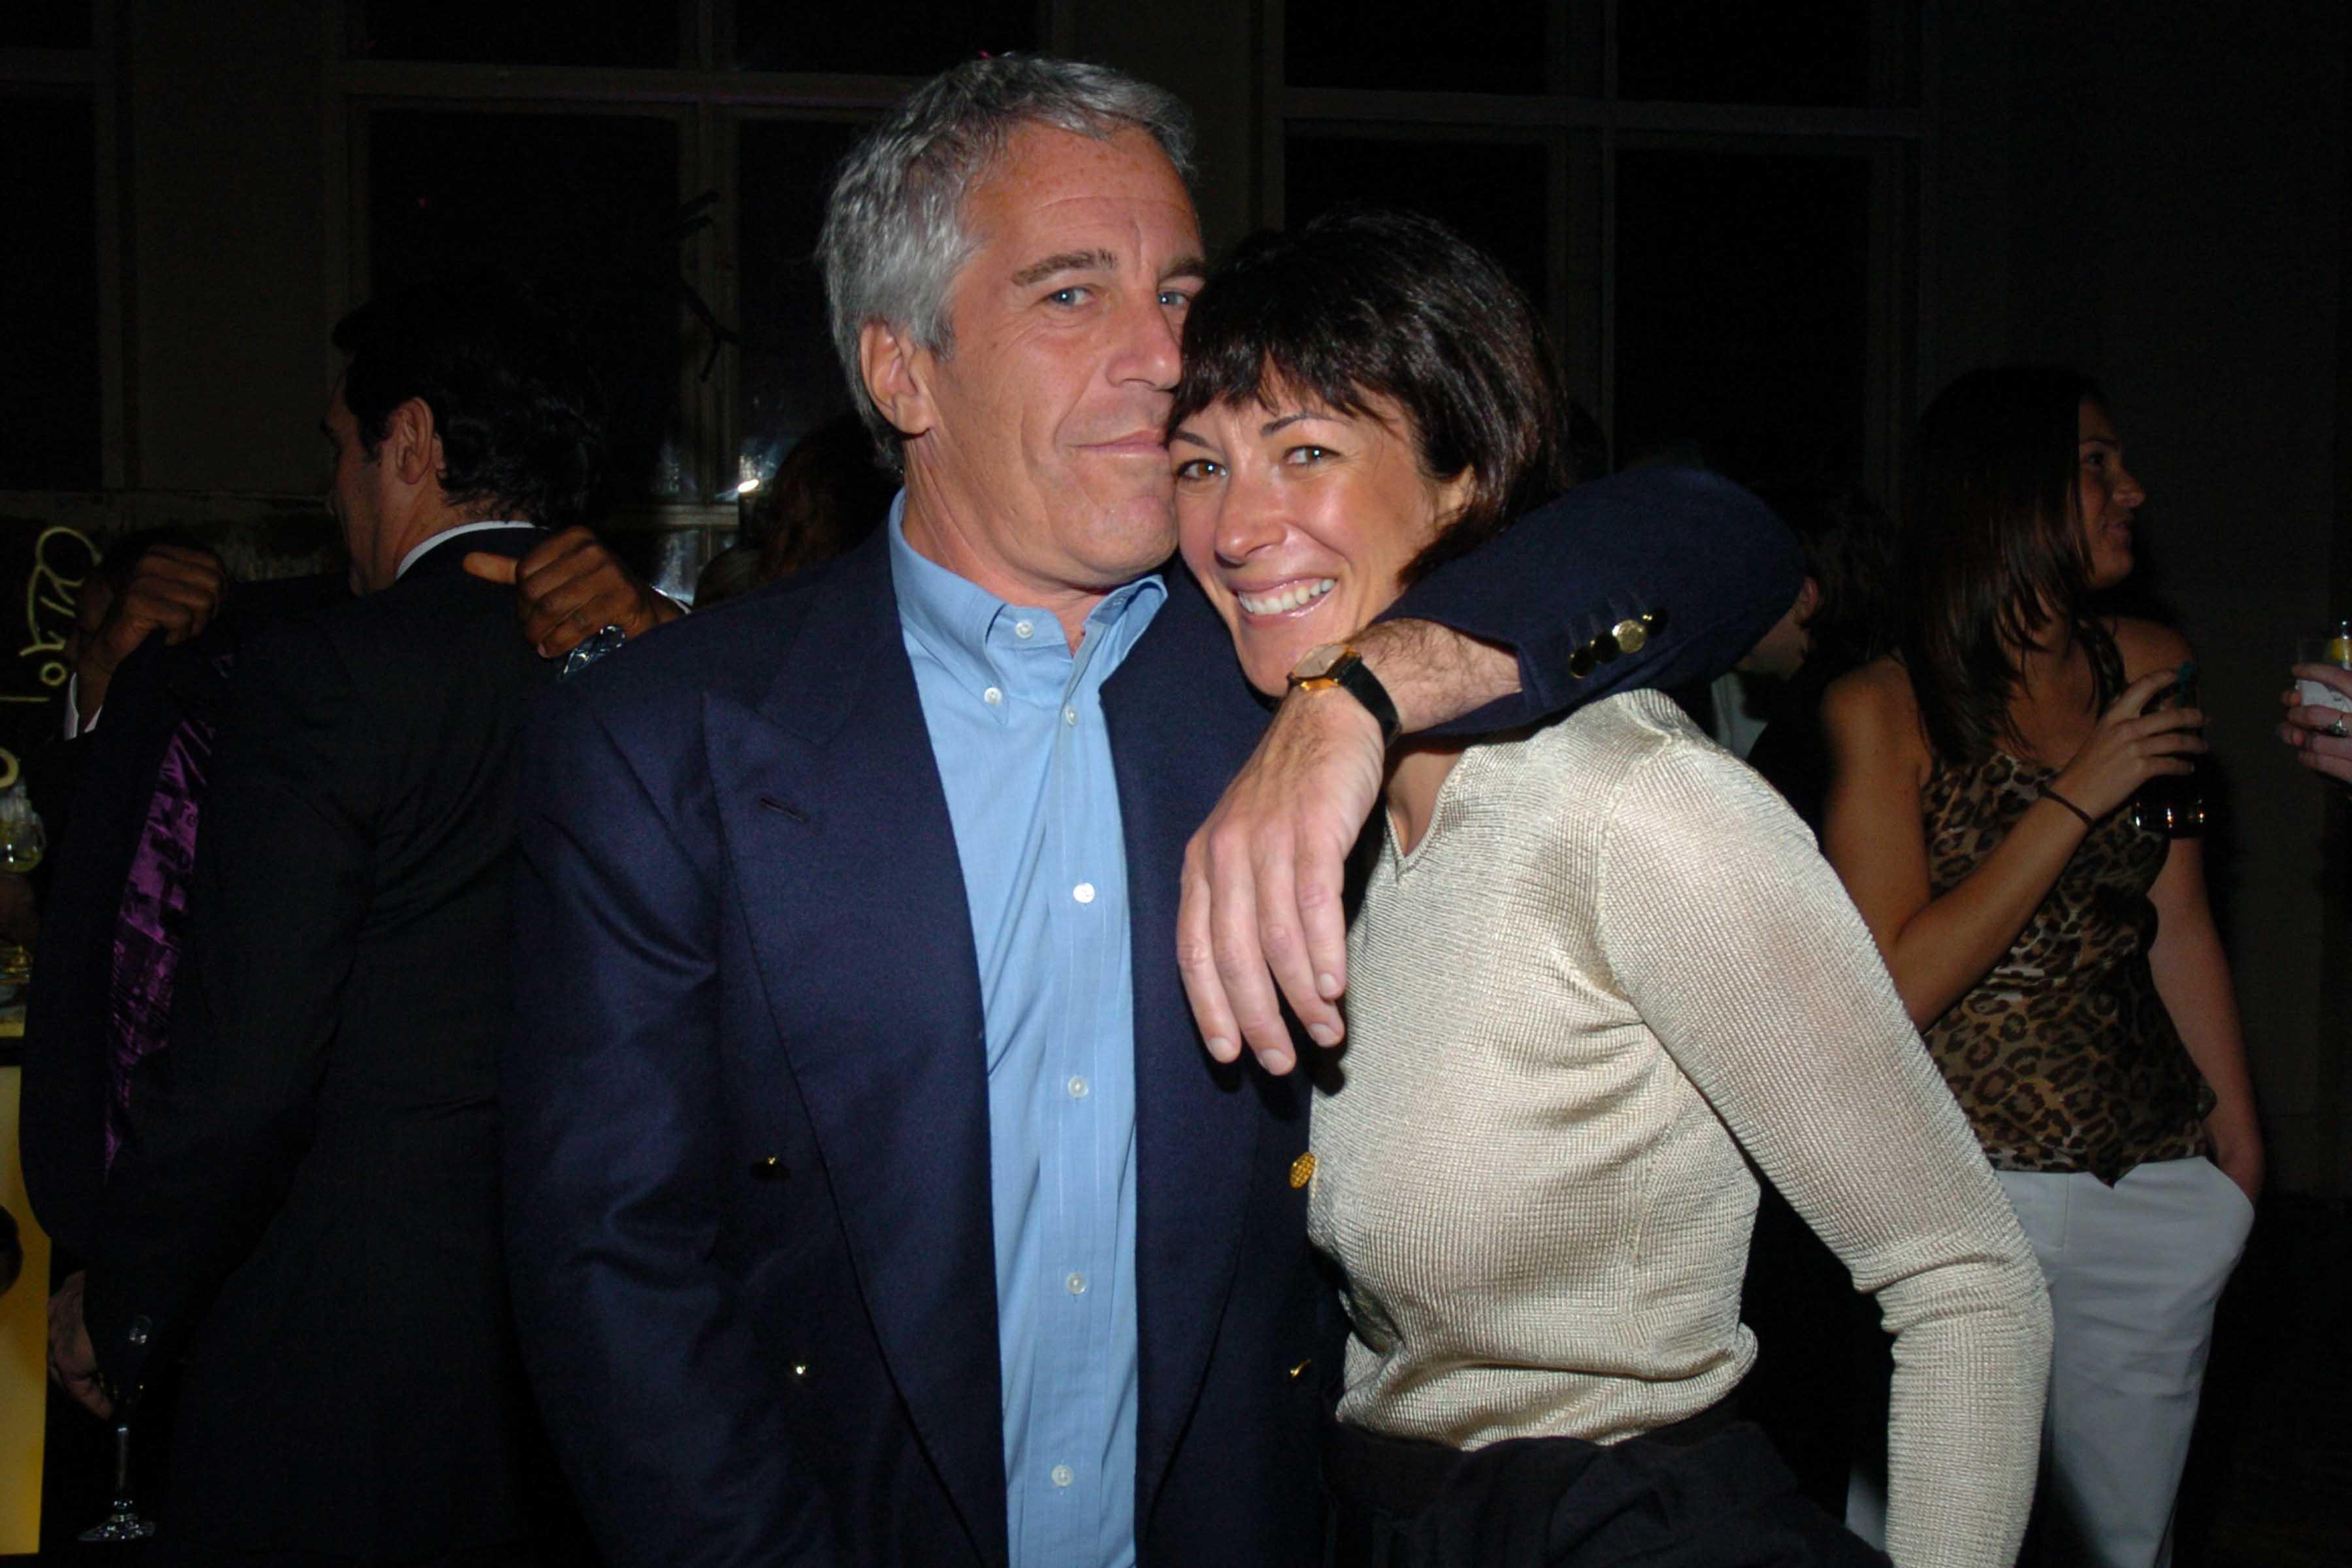 Ghislaine Maxwell is at the center of the Epstein controversy, but she's in hiding